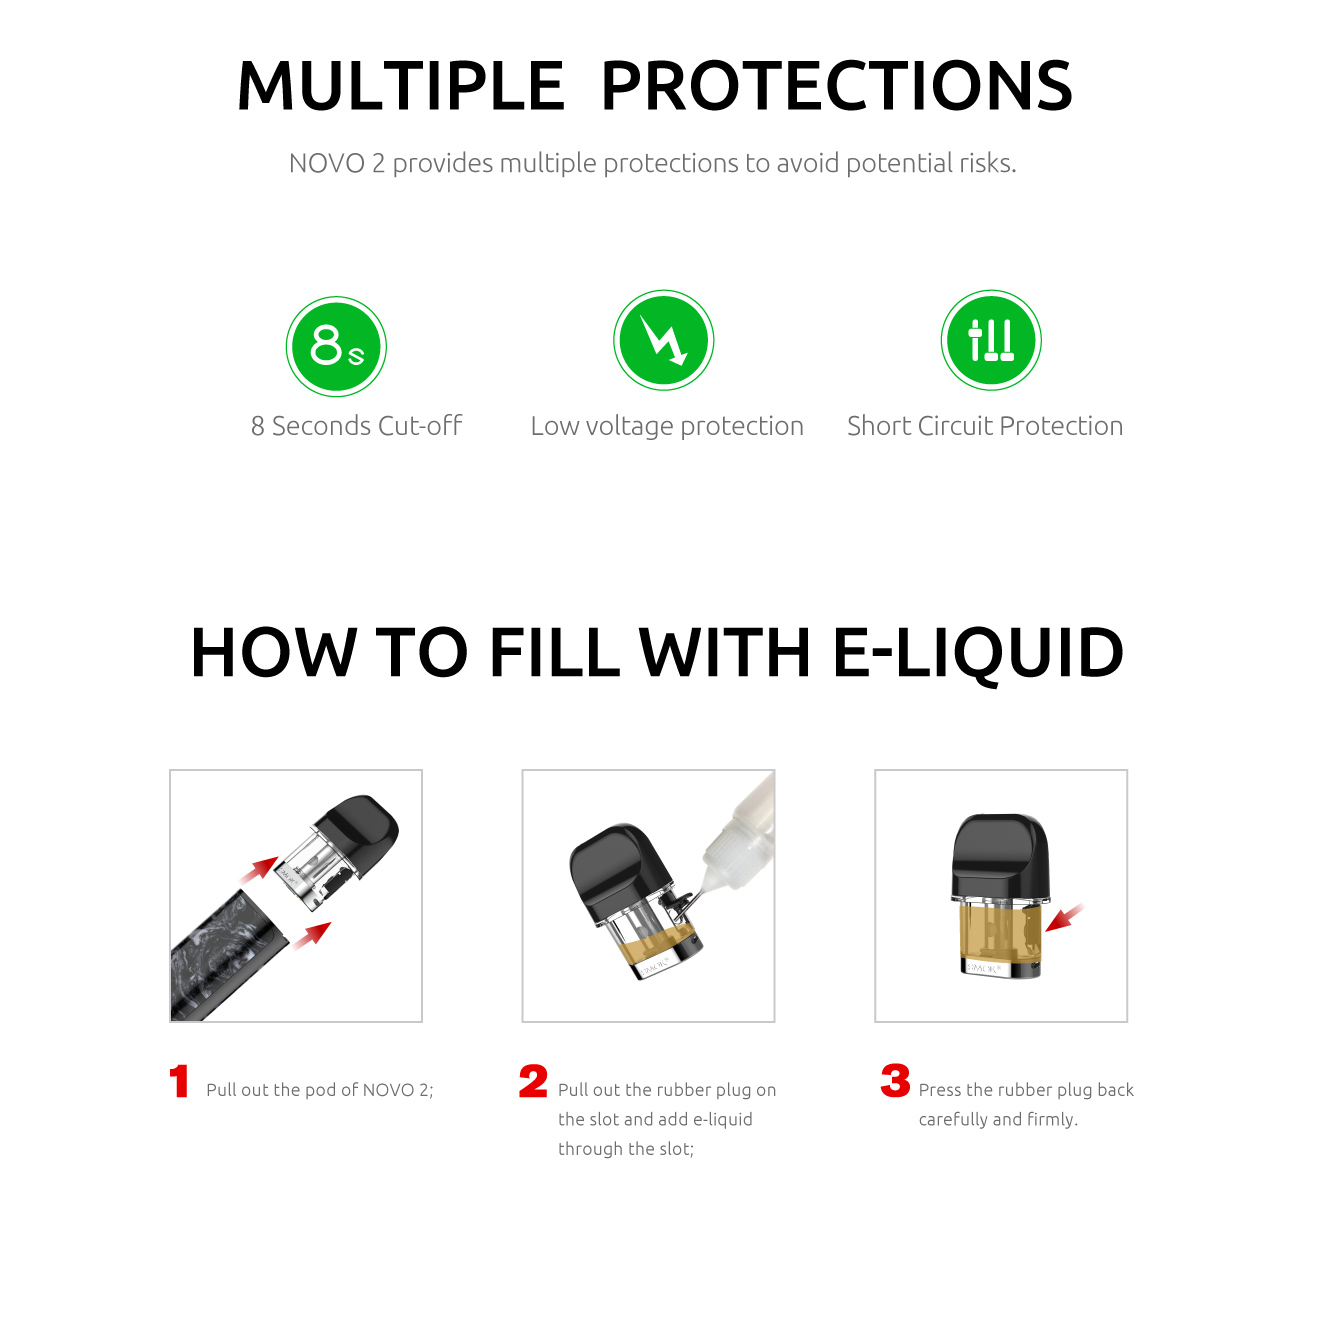 Multiple Protections and E-Liquid Filling Instructions for SMOK NOVO 2 Kit